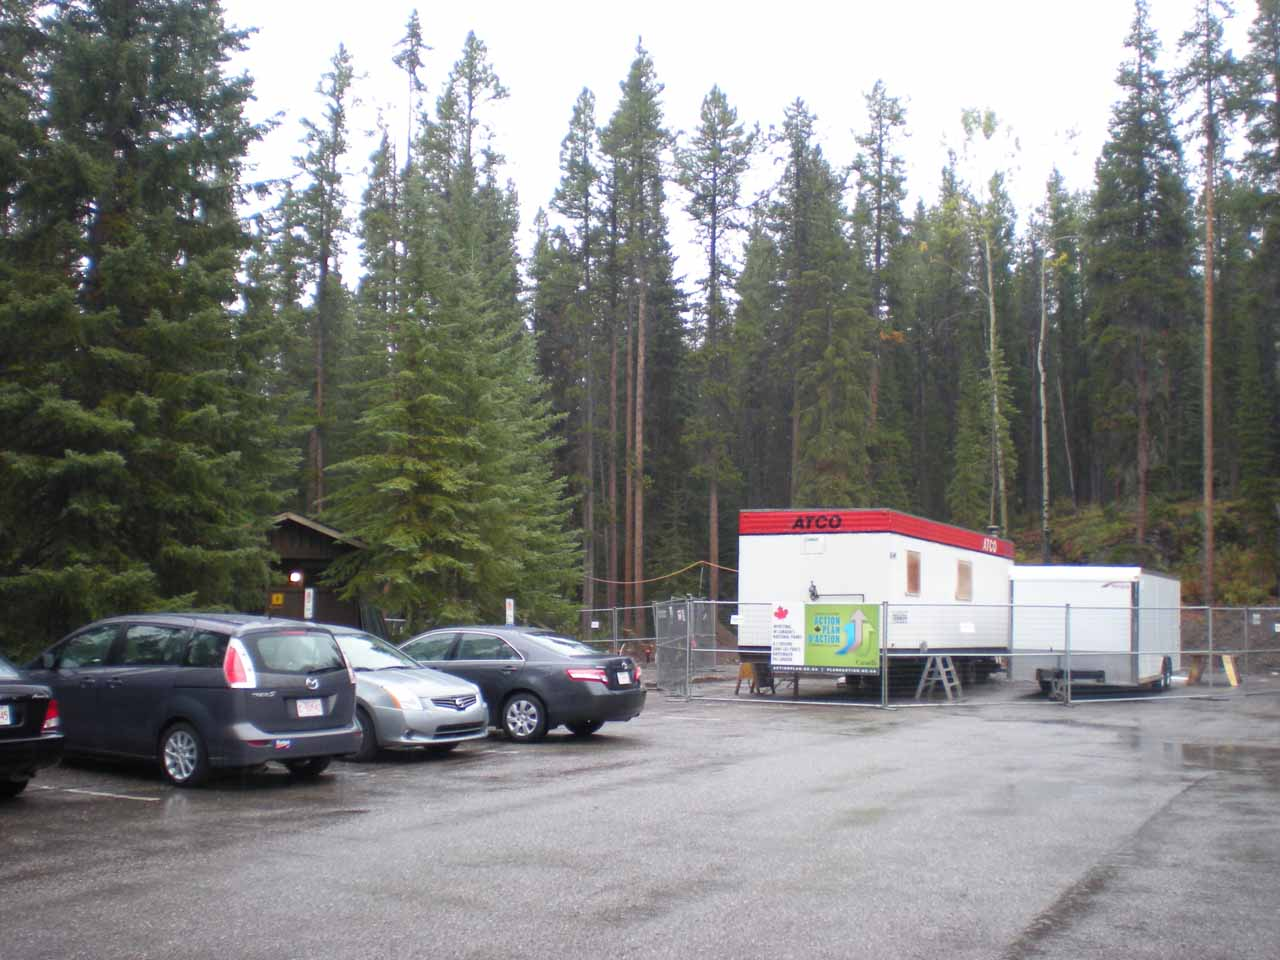 The surprisingly busy car park for Johnston Canyon